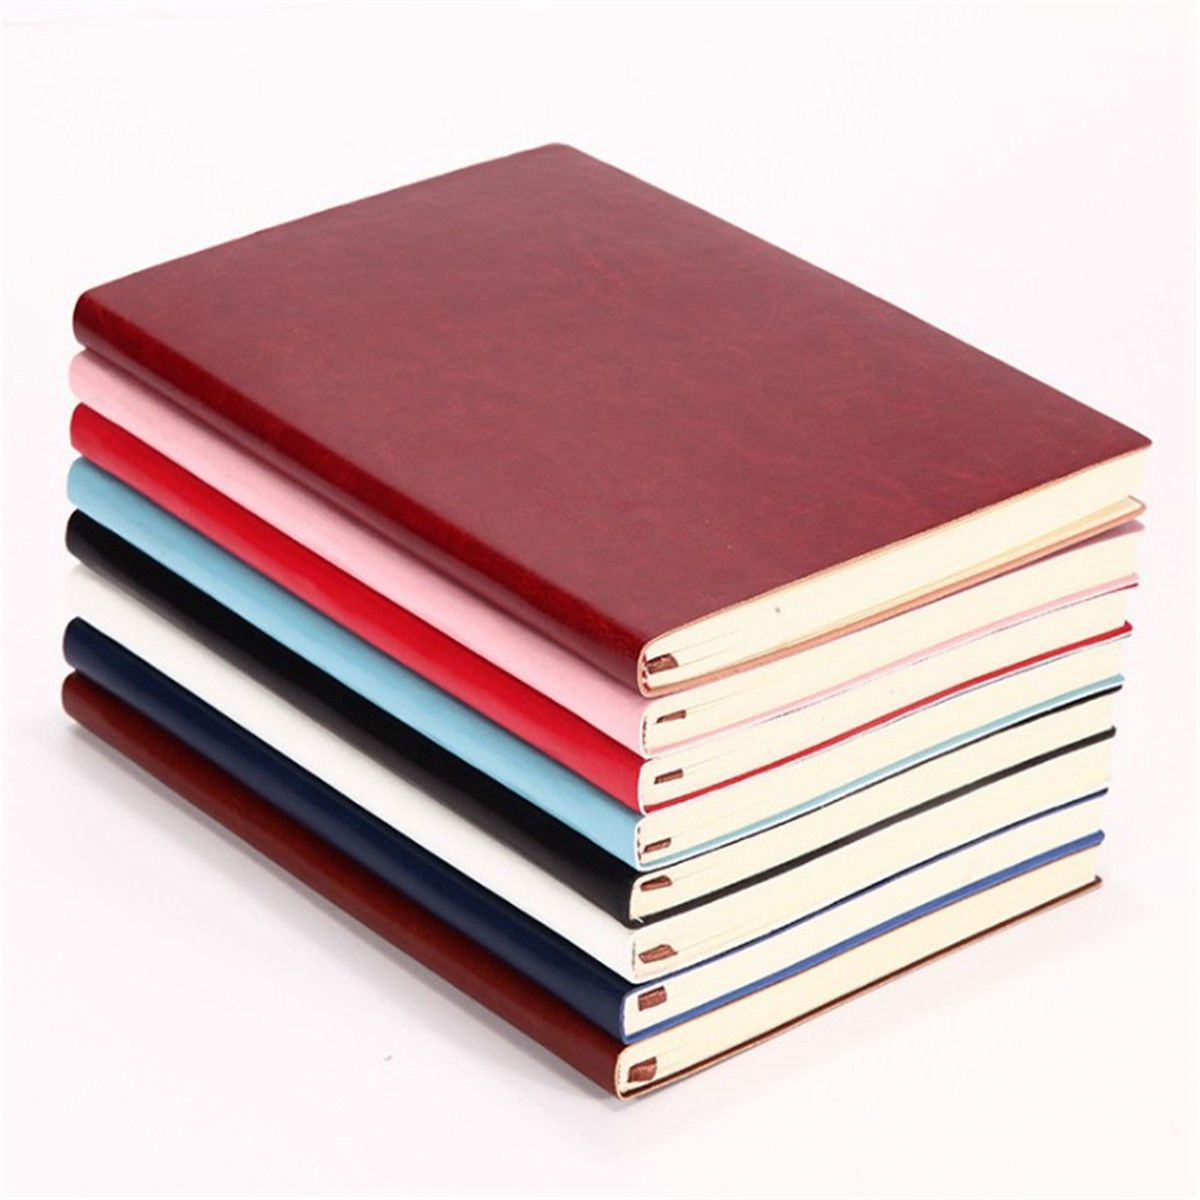 Random Color Soft Cover PU Leather Notebook Writing Journal 100 Page Lined Diary Book Random Color Soft Cover PU Leather Notebook Writing Journal 100 Page Lined Diary Book